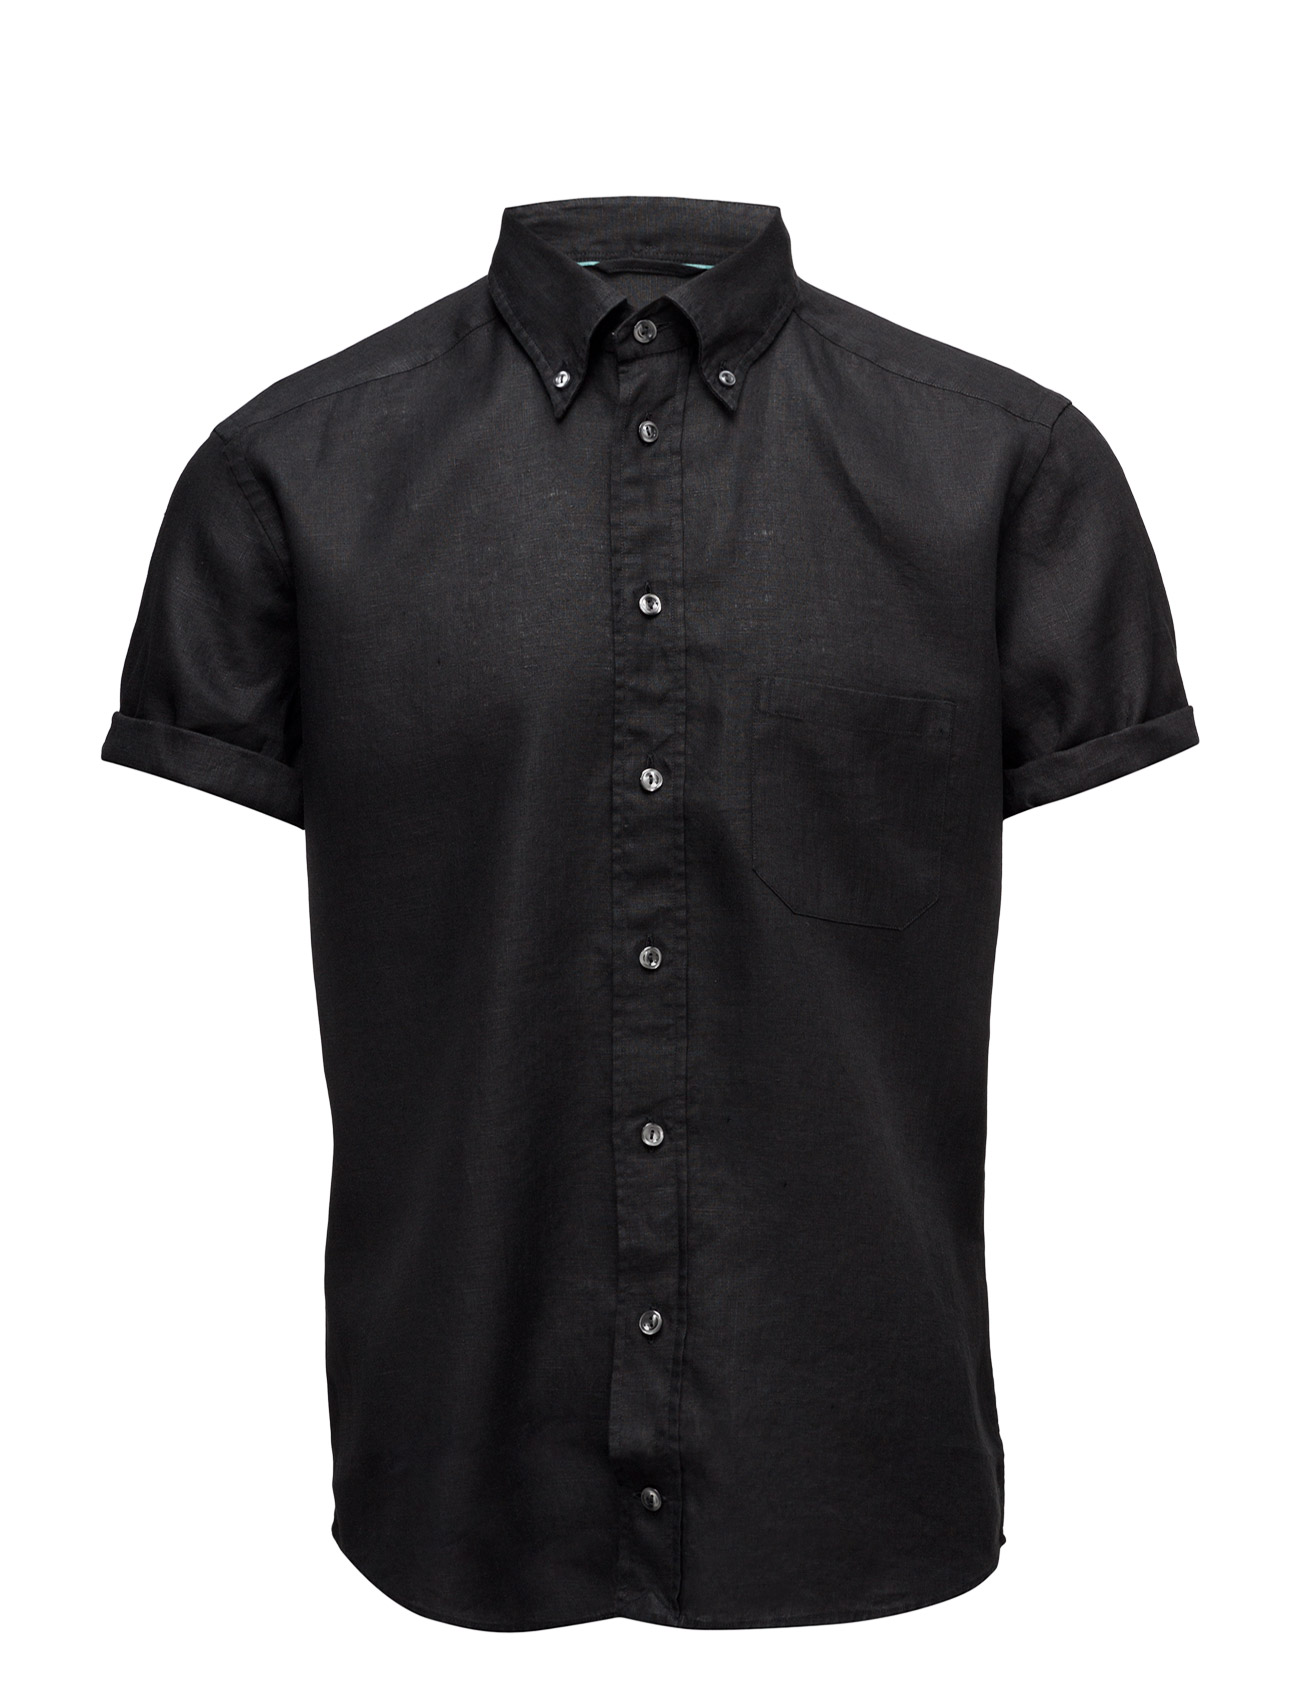 Image of Hoxton-Green-Slim Fit (2382594209)